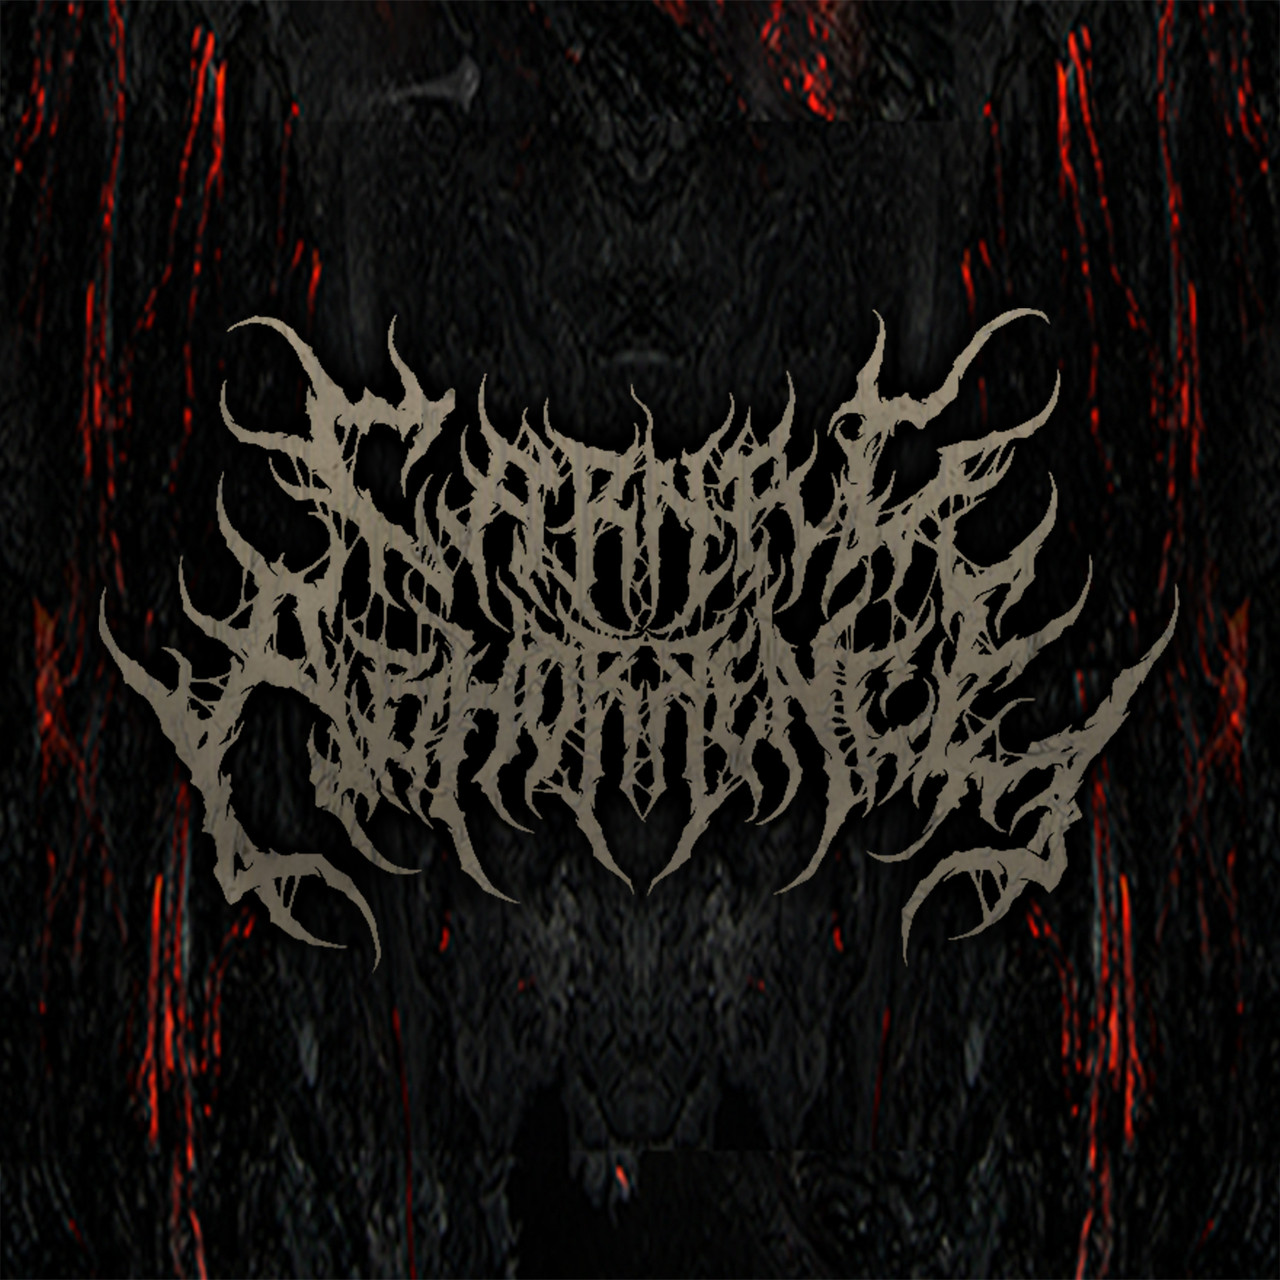 Carnal Abhorrence